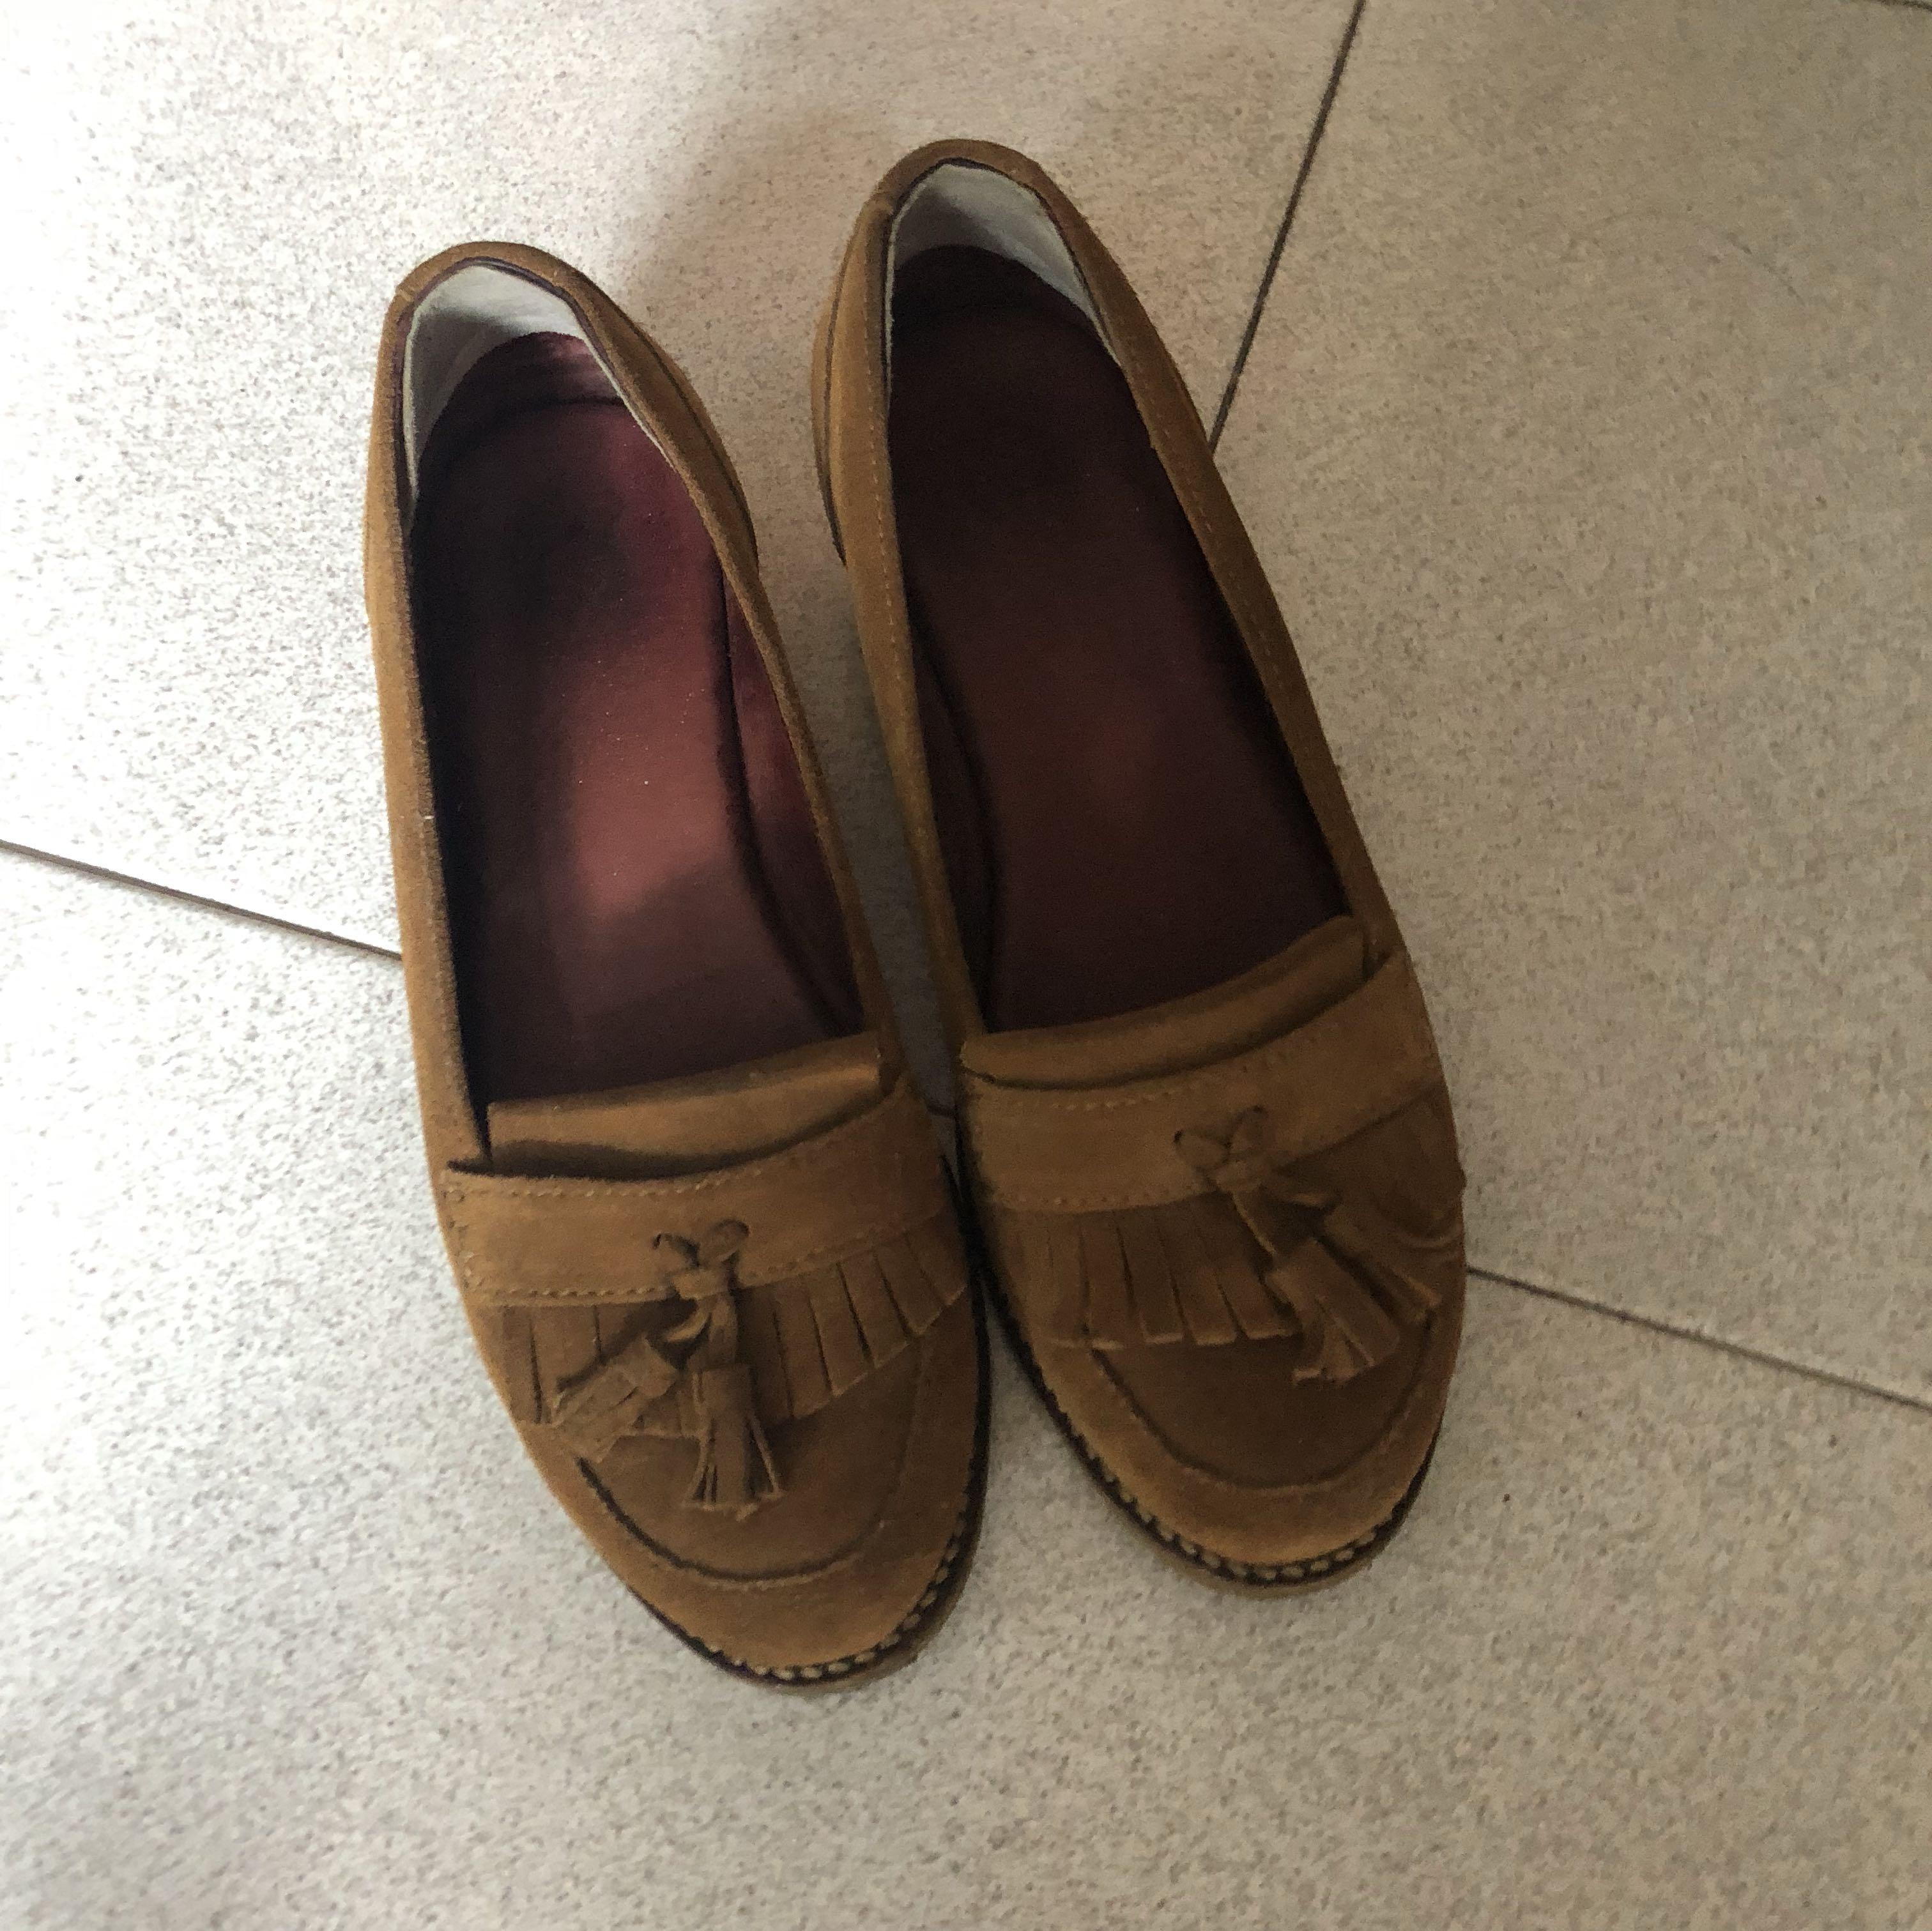 Fred sperry shoes, Women's Fashion